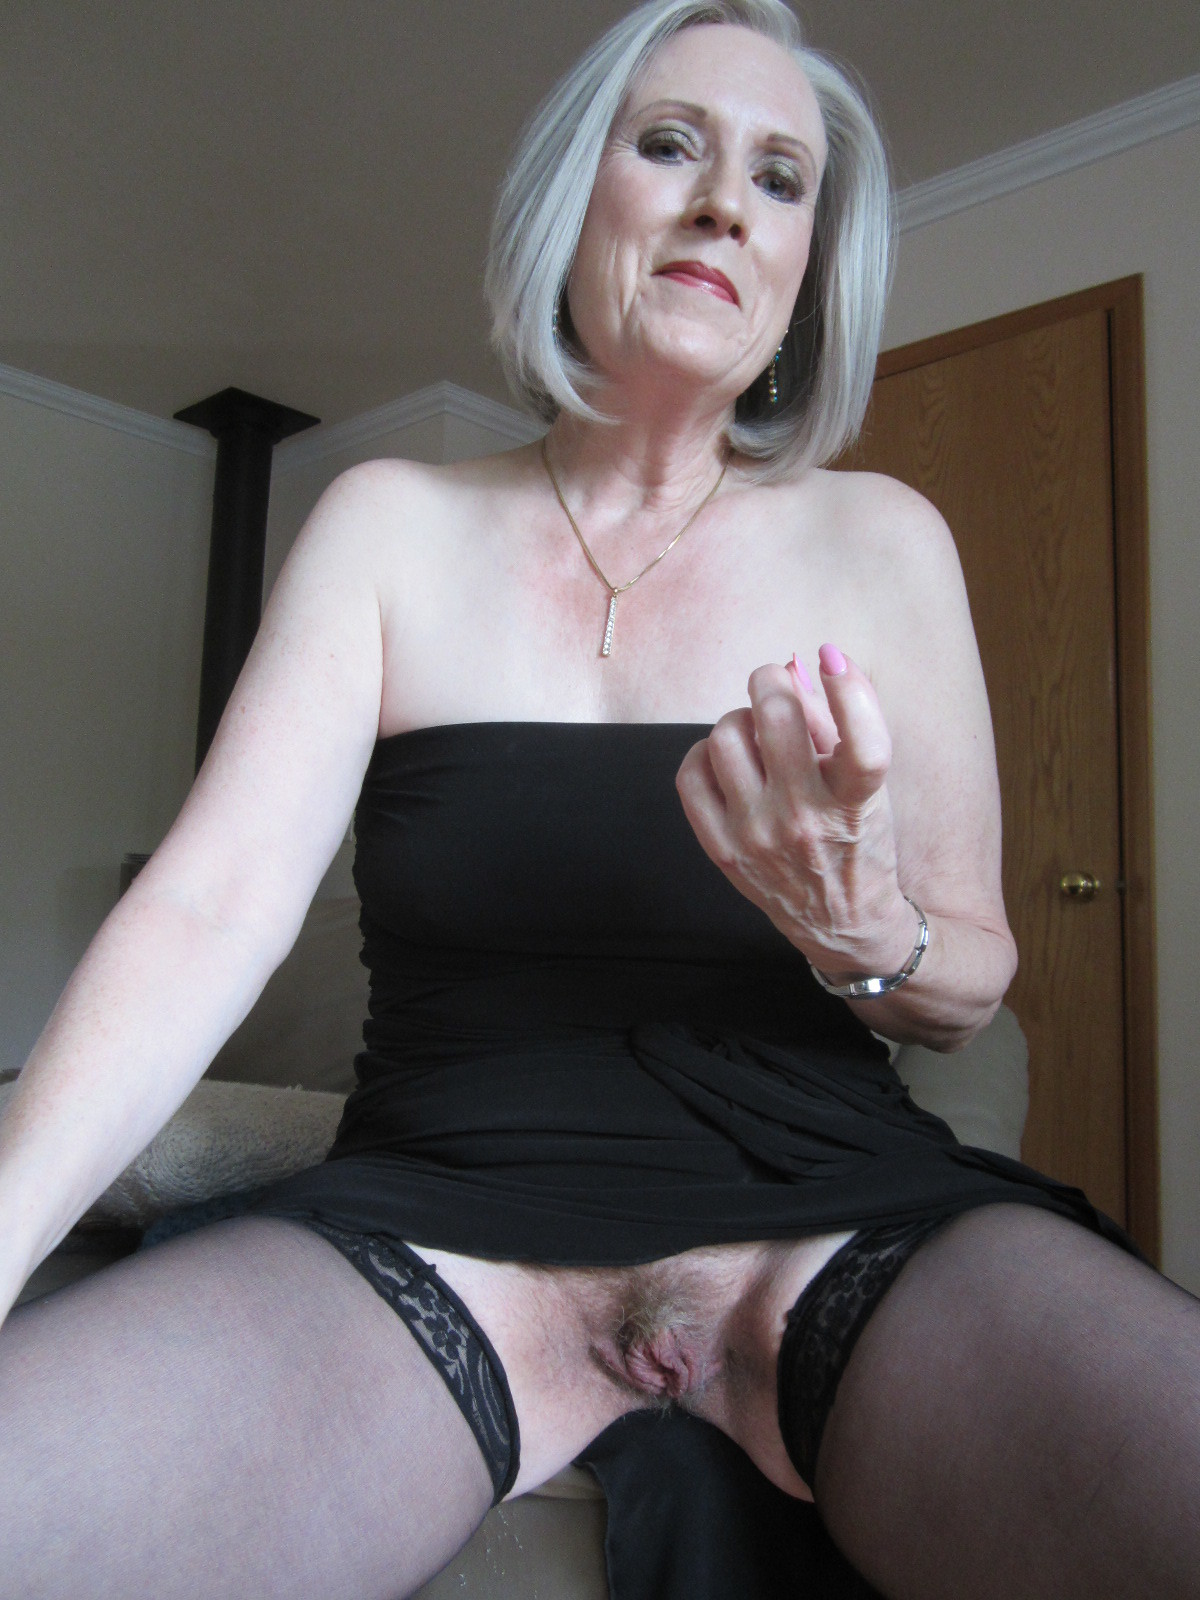 Omageil hot busty mature lady solo striptease 4